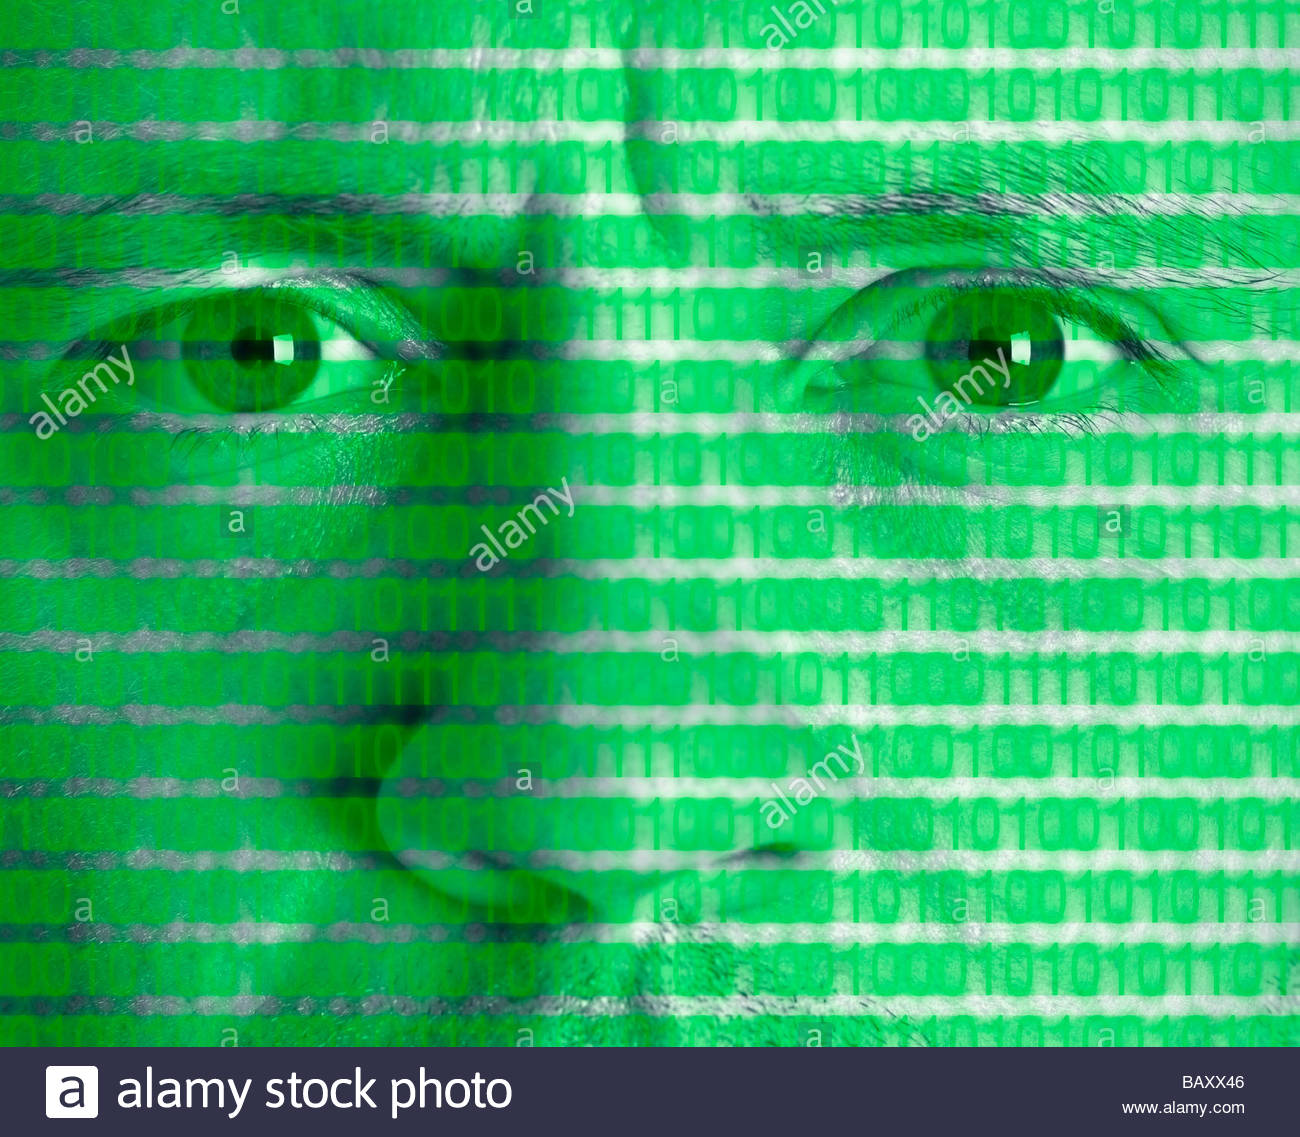 Montage of man's face with binary code - Stock Image